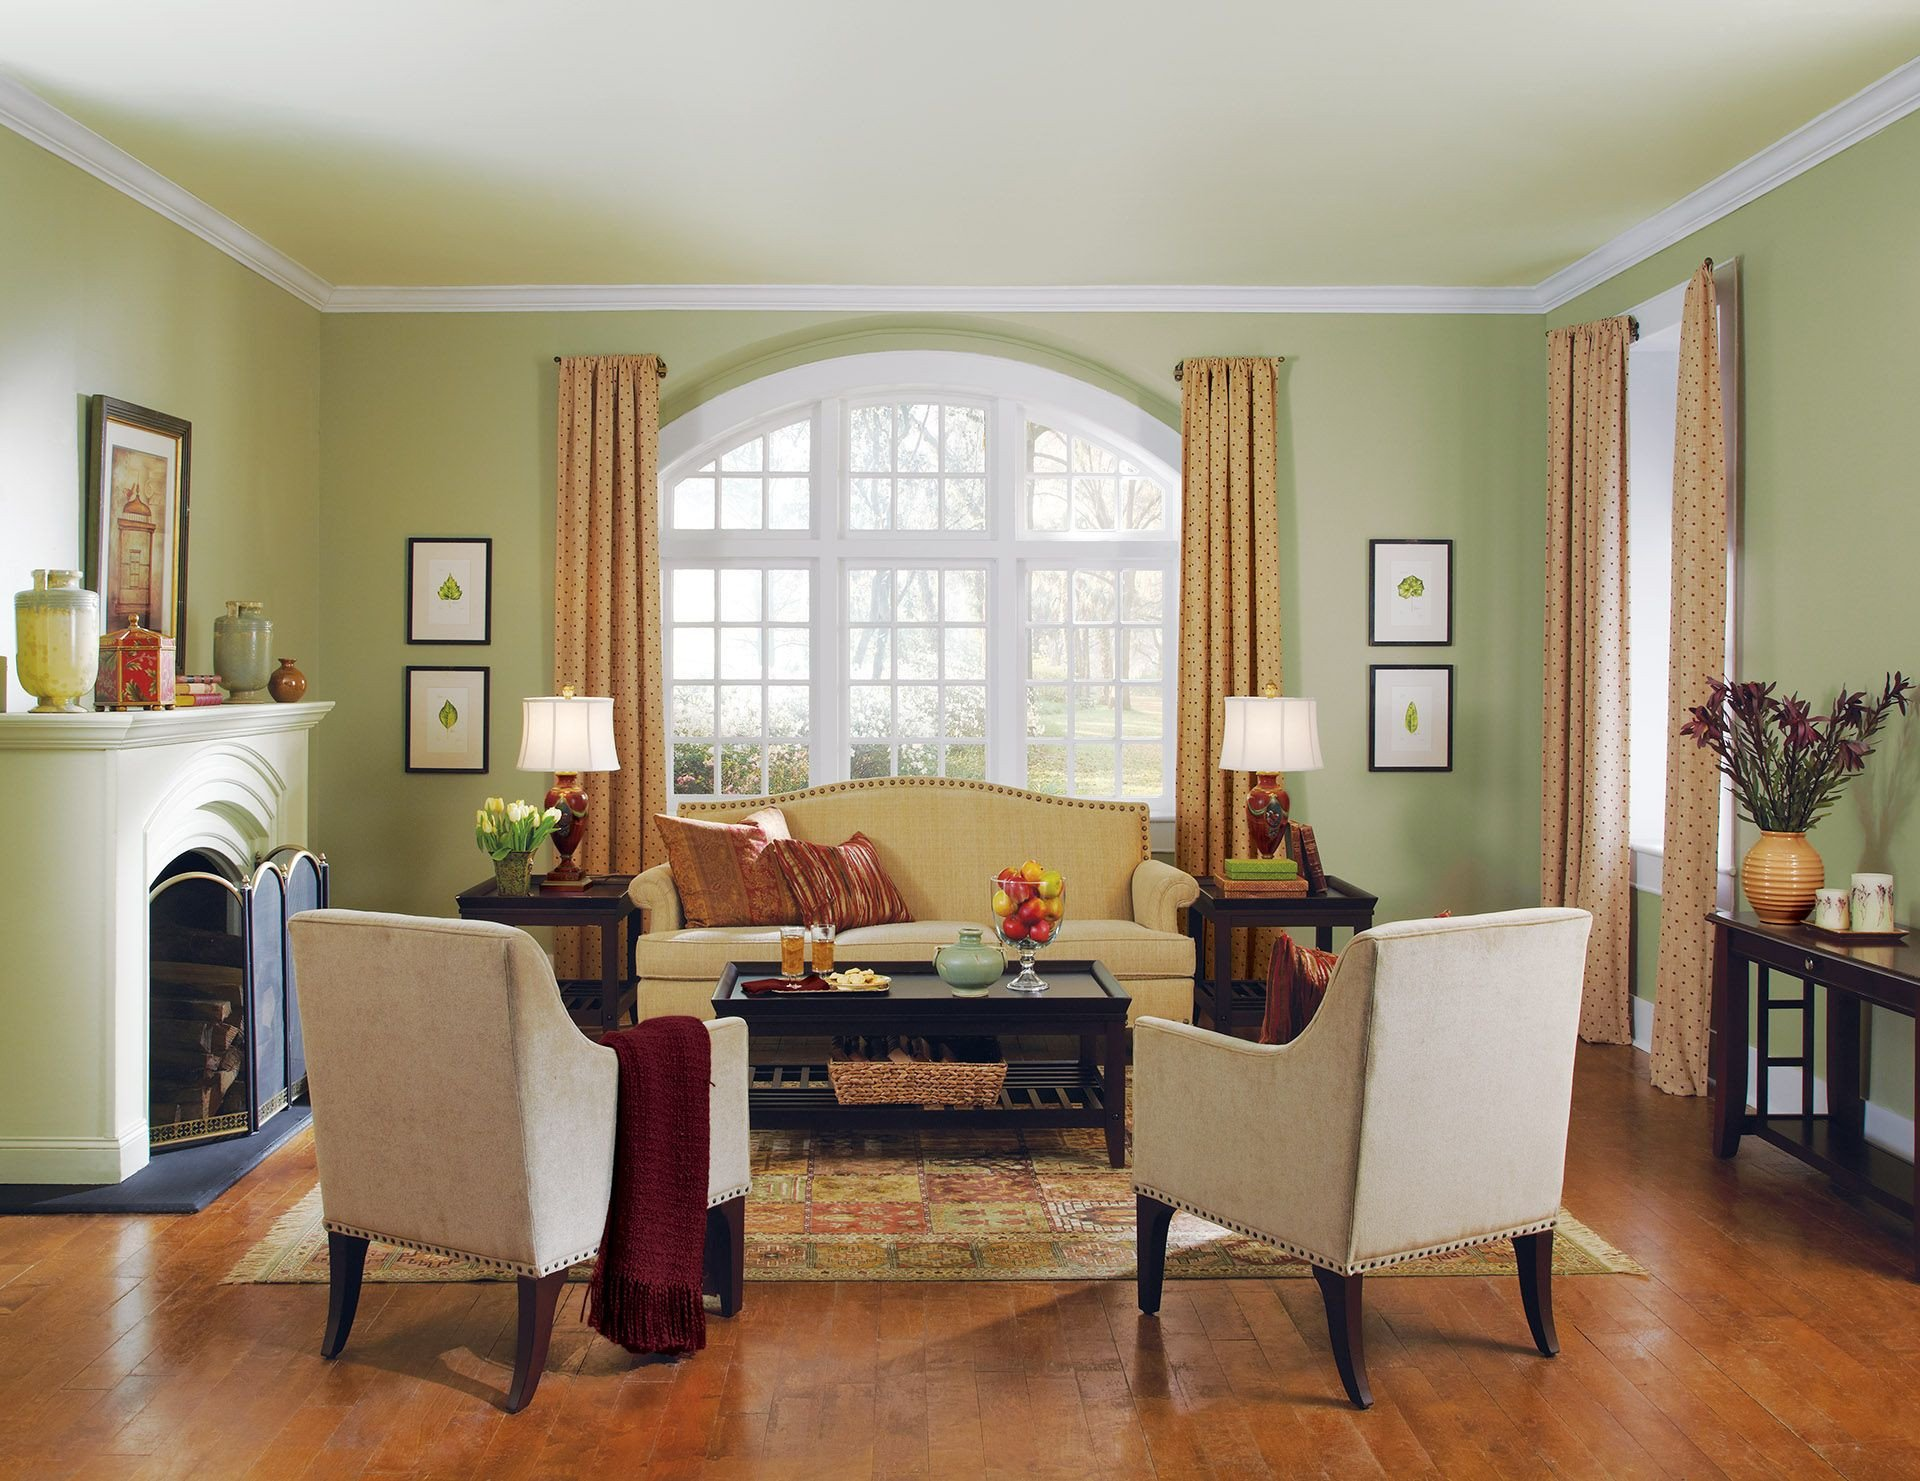 Sage Green Bedroom Ideas Inspirational Color On Wall Dried Sage 26a 3 Color On Trim Designer